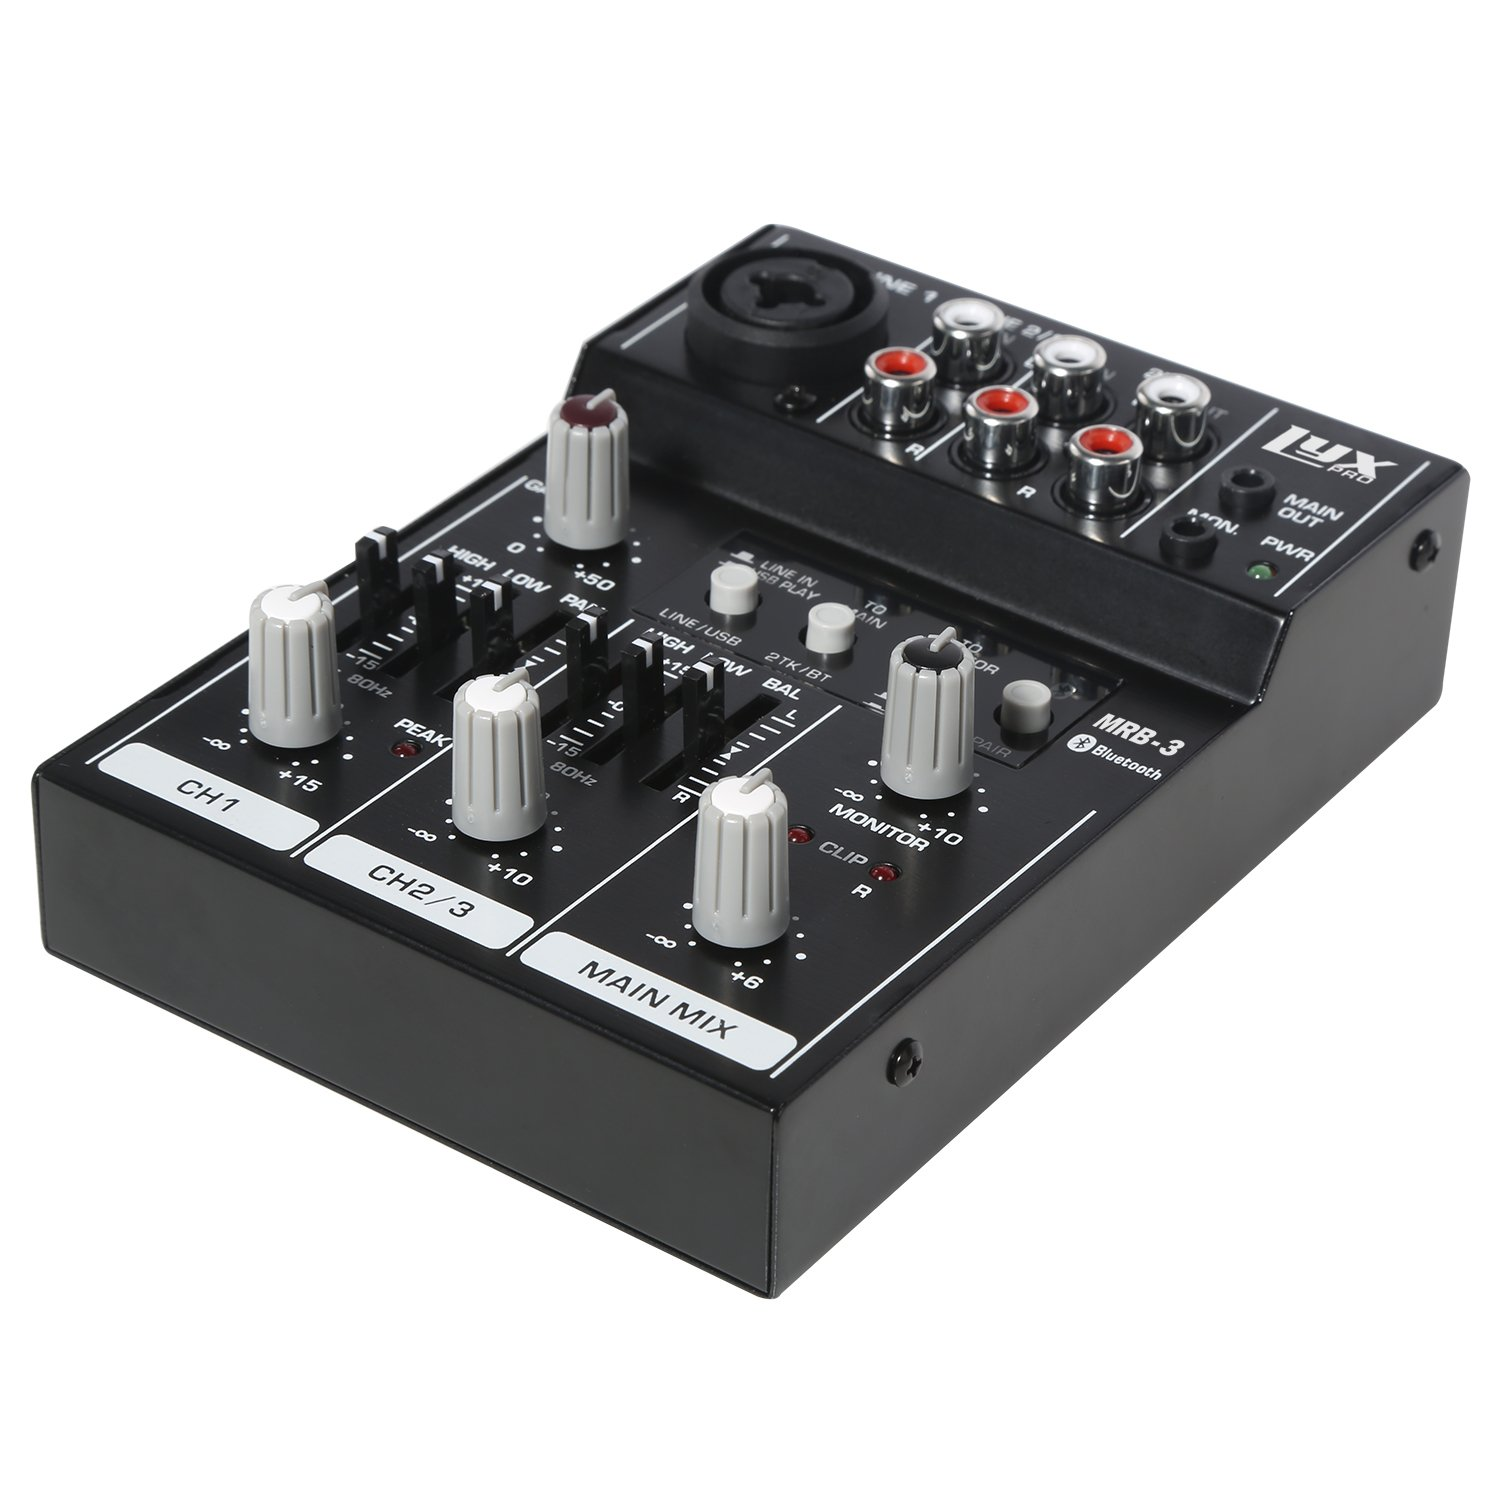 Lyxpro Mrb3 3 Channel Audio Mixer Flexible Compact Three Splitter Personal Pro With Usb Bluetooth Connections Musical Instruments